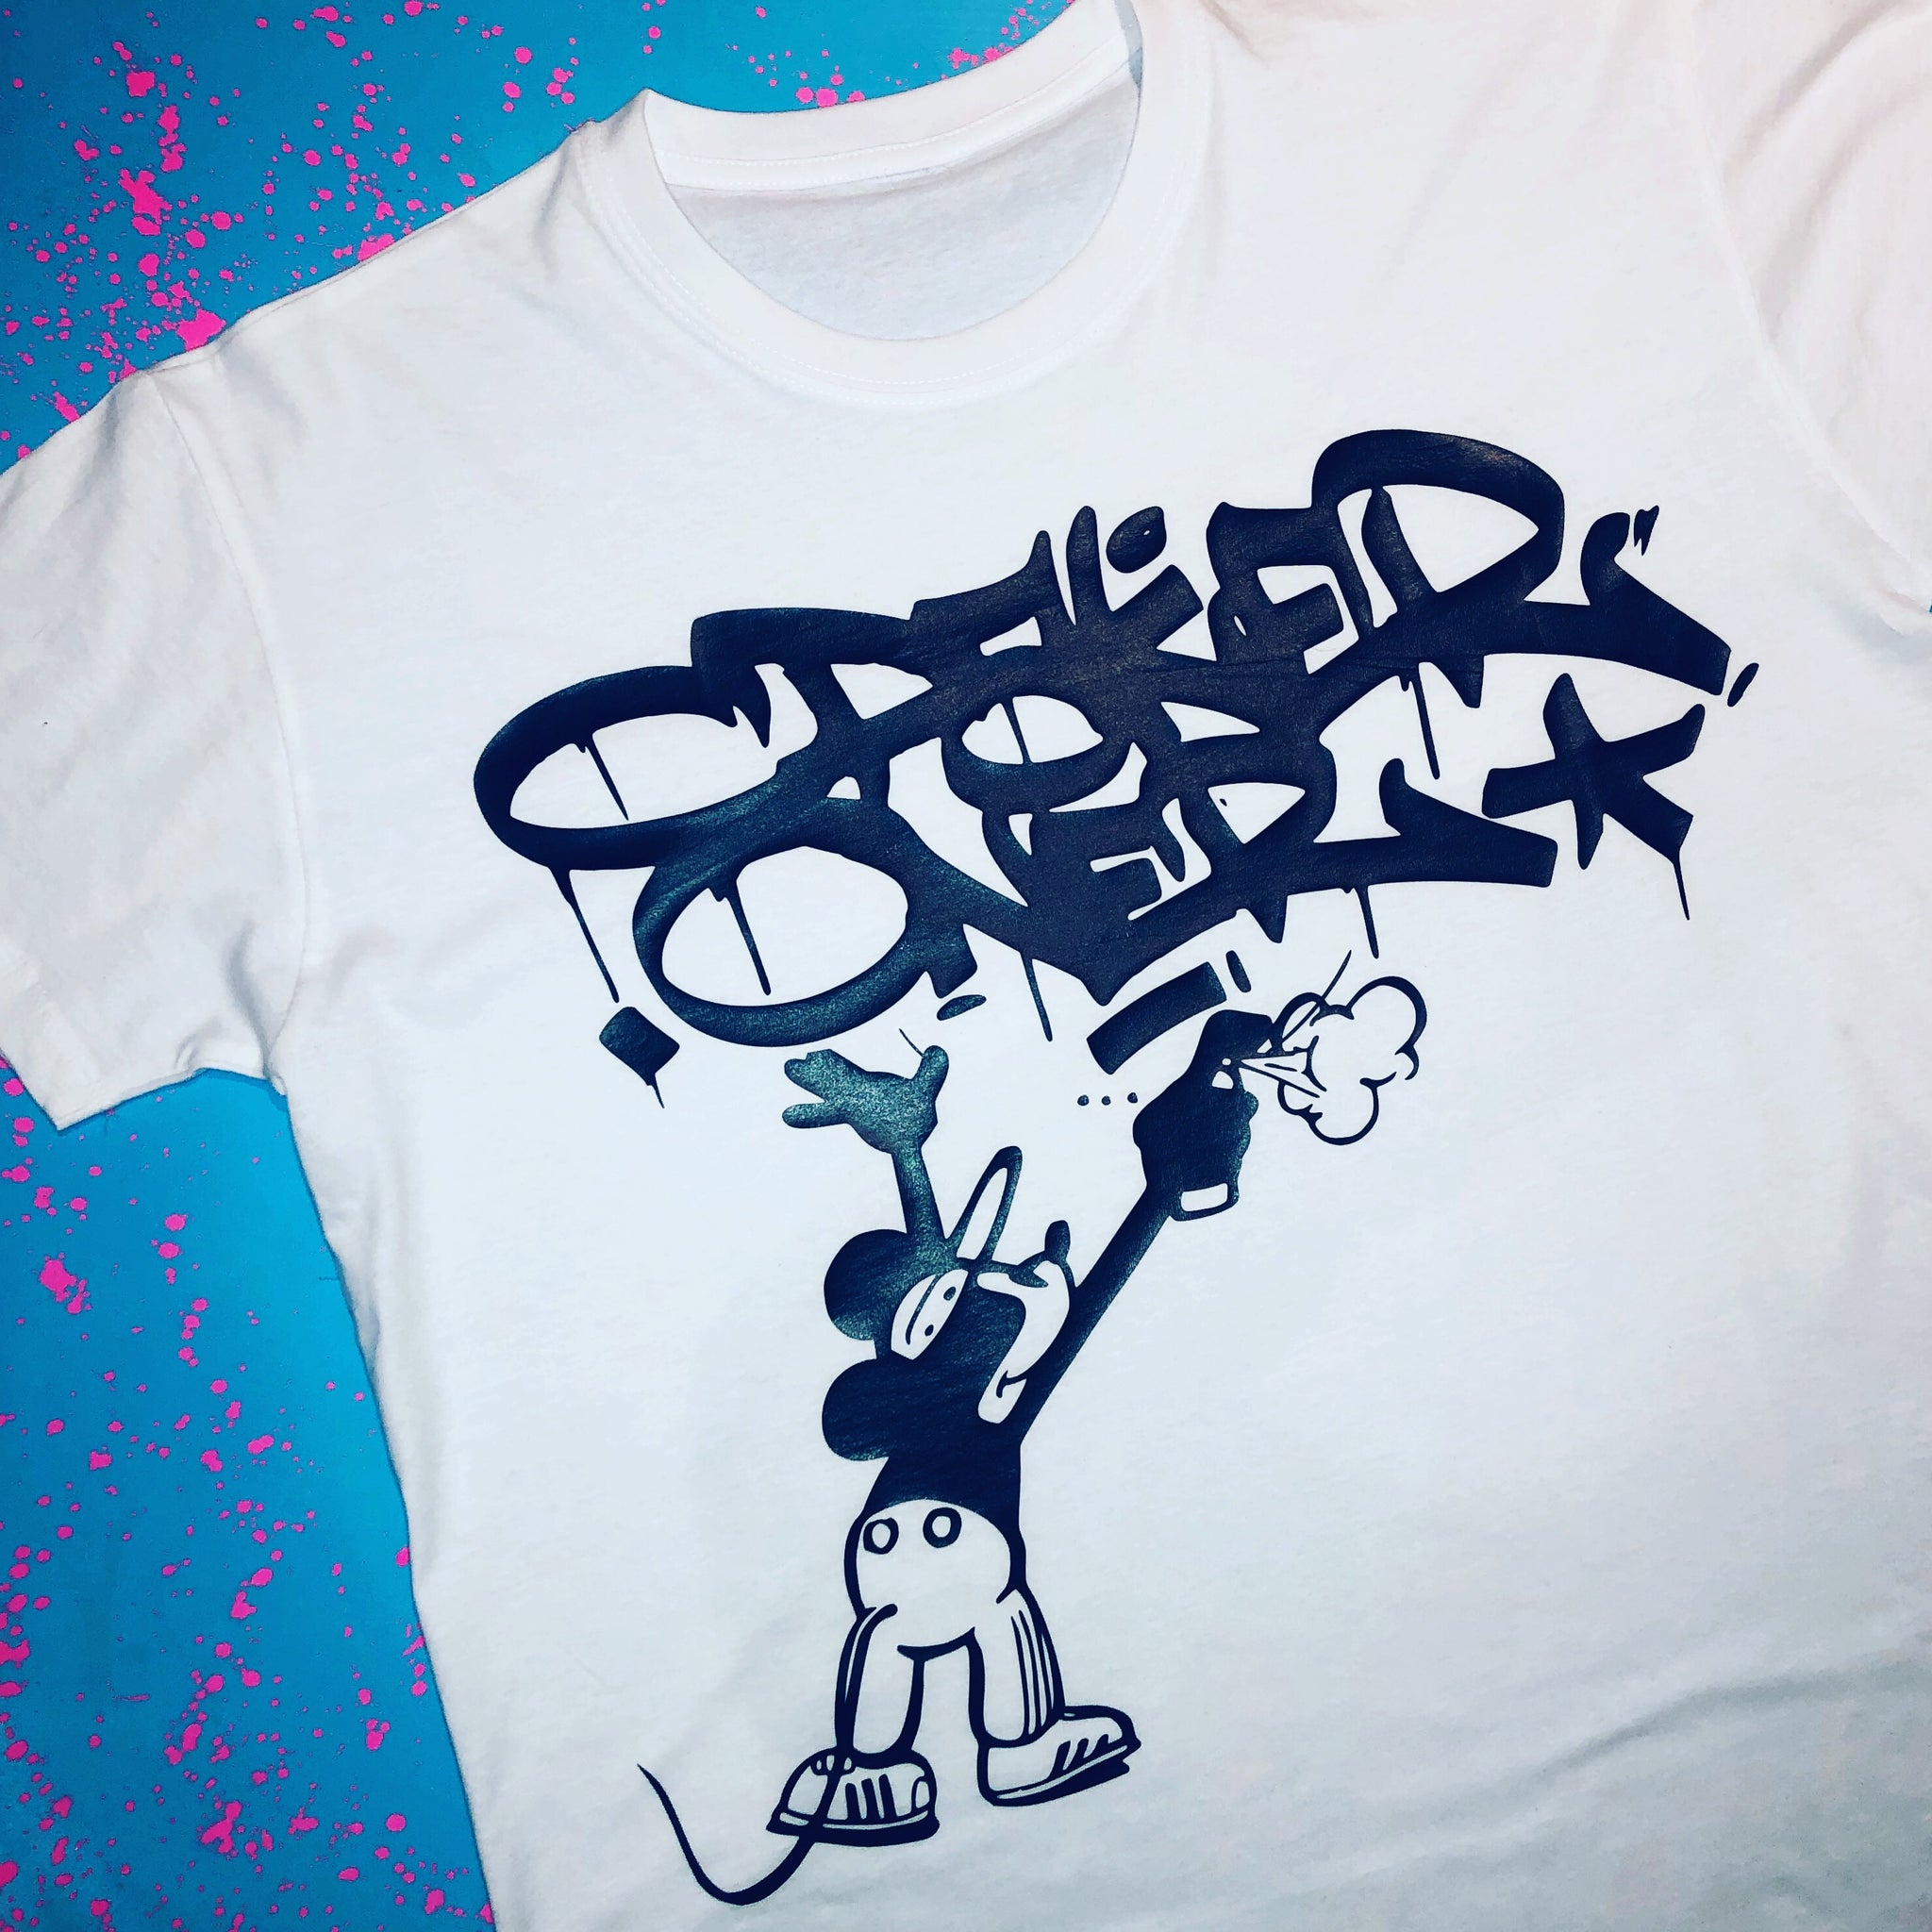 customers first high quality materials release info on Get Up Mouse Custom Graffiti T-Shirt